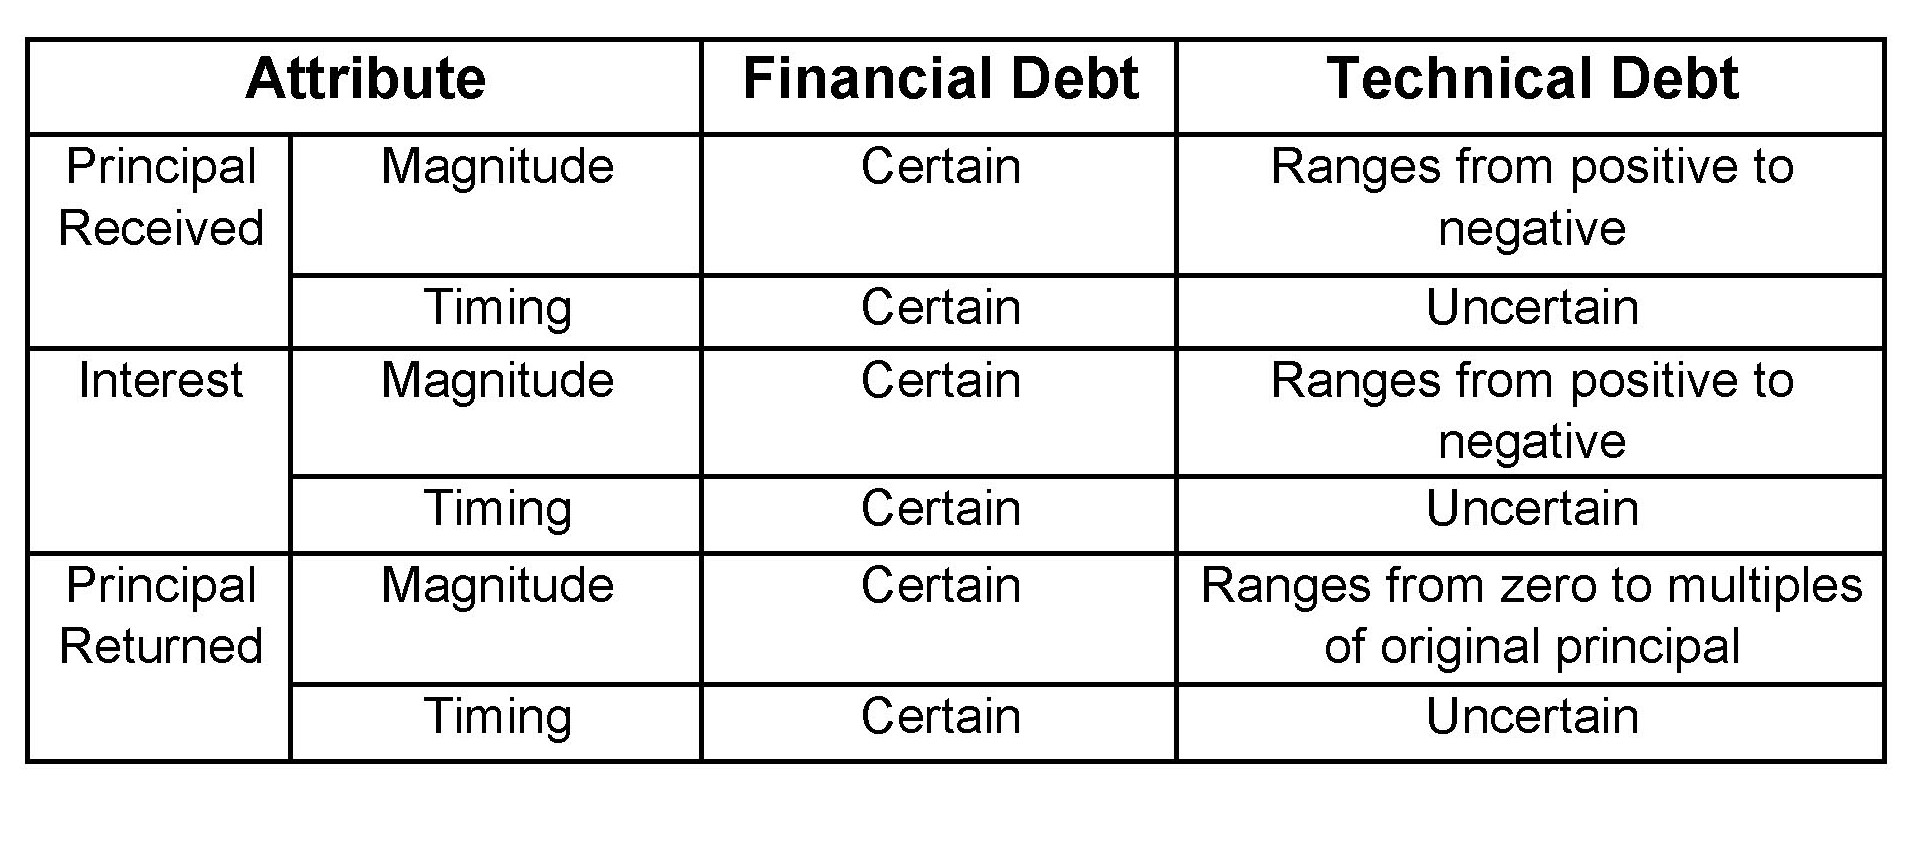 Technical Debt Table 2013b